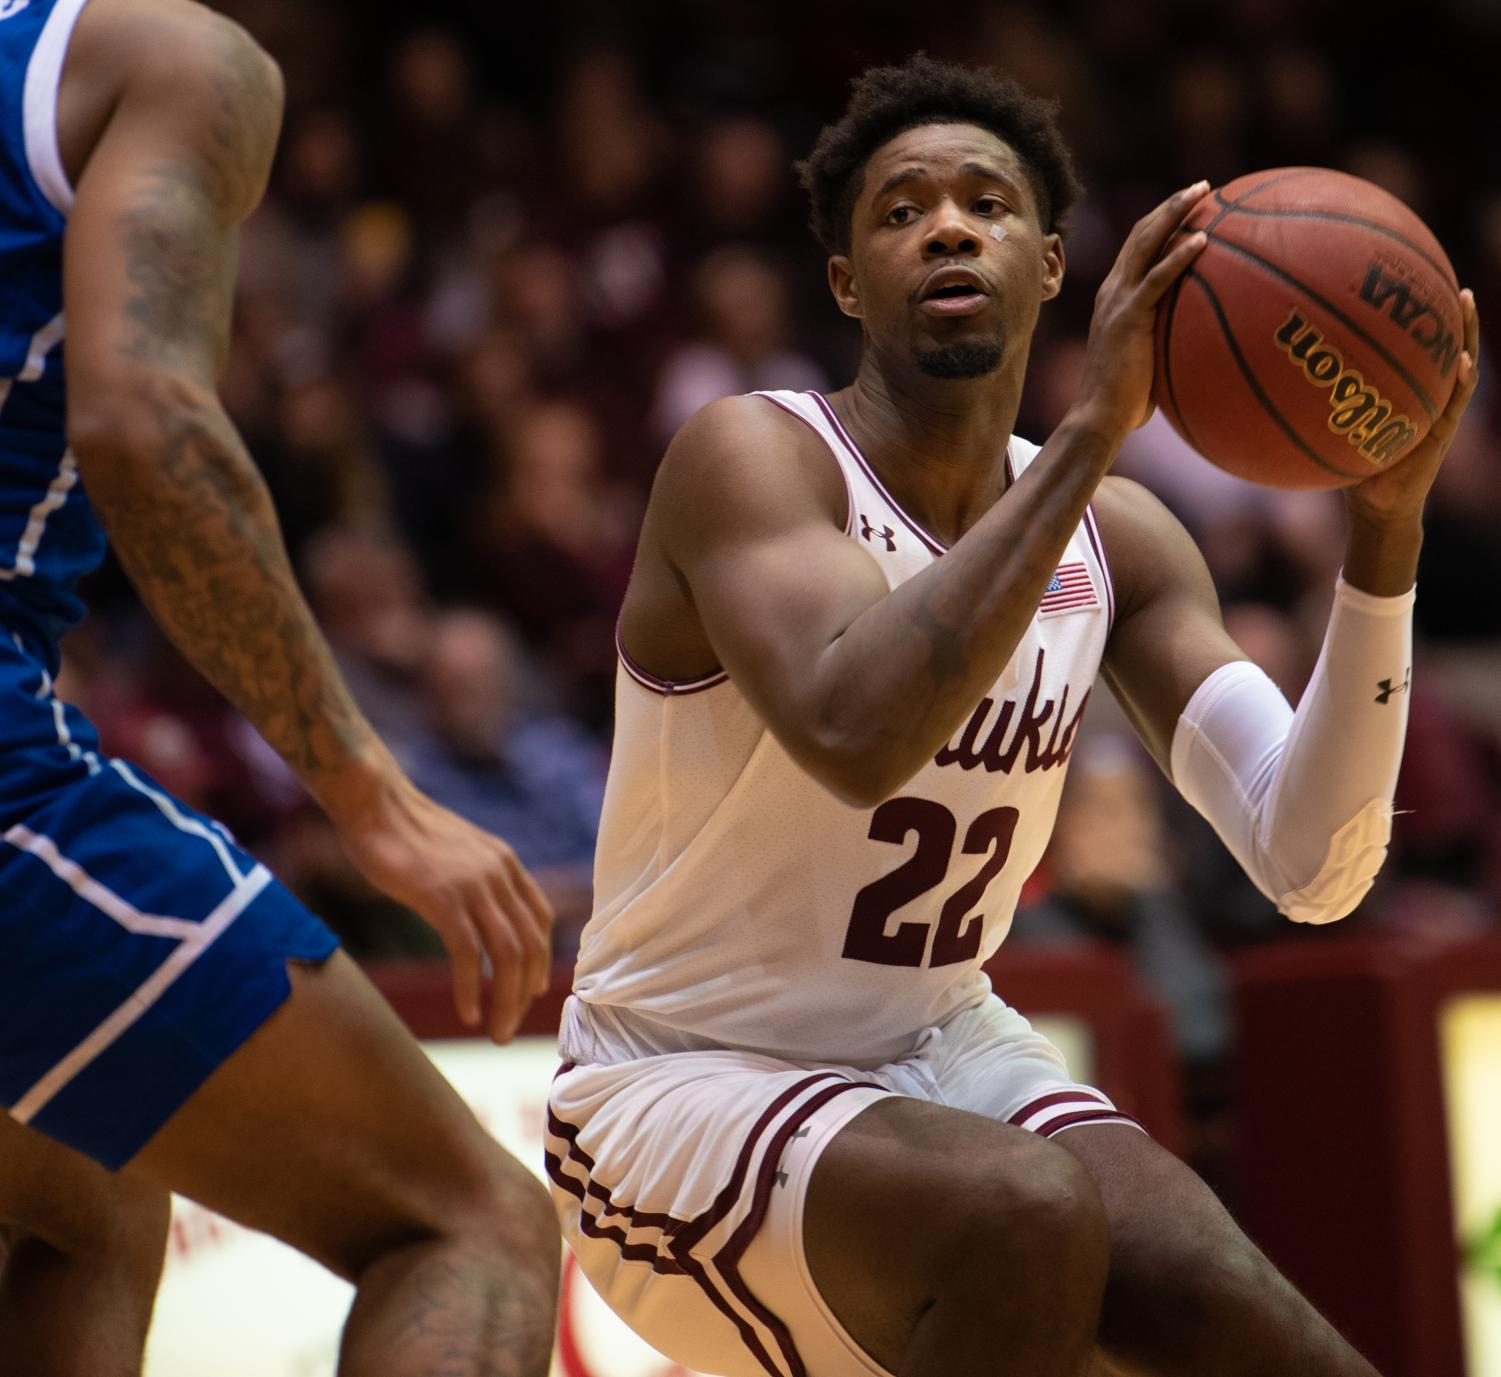 Saluki+senior+guard+Armon+Fletcher+looks+for+the+right+moment+to+go+for+the+basket+on+Tuesday%2C+Feb.+12%2C+2019+during+the+Saluki%27s+72-69+loss+against+the+Drake+Bulldogs+at+SIU+Arena.+